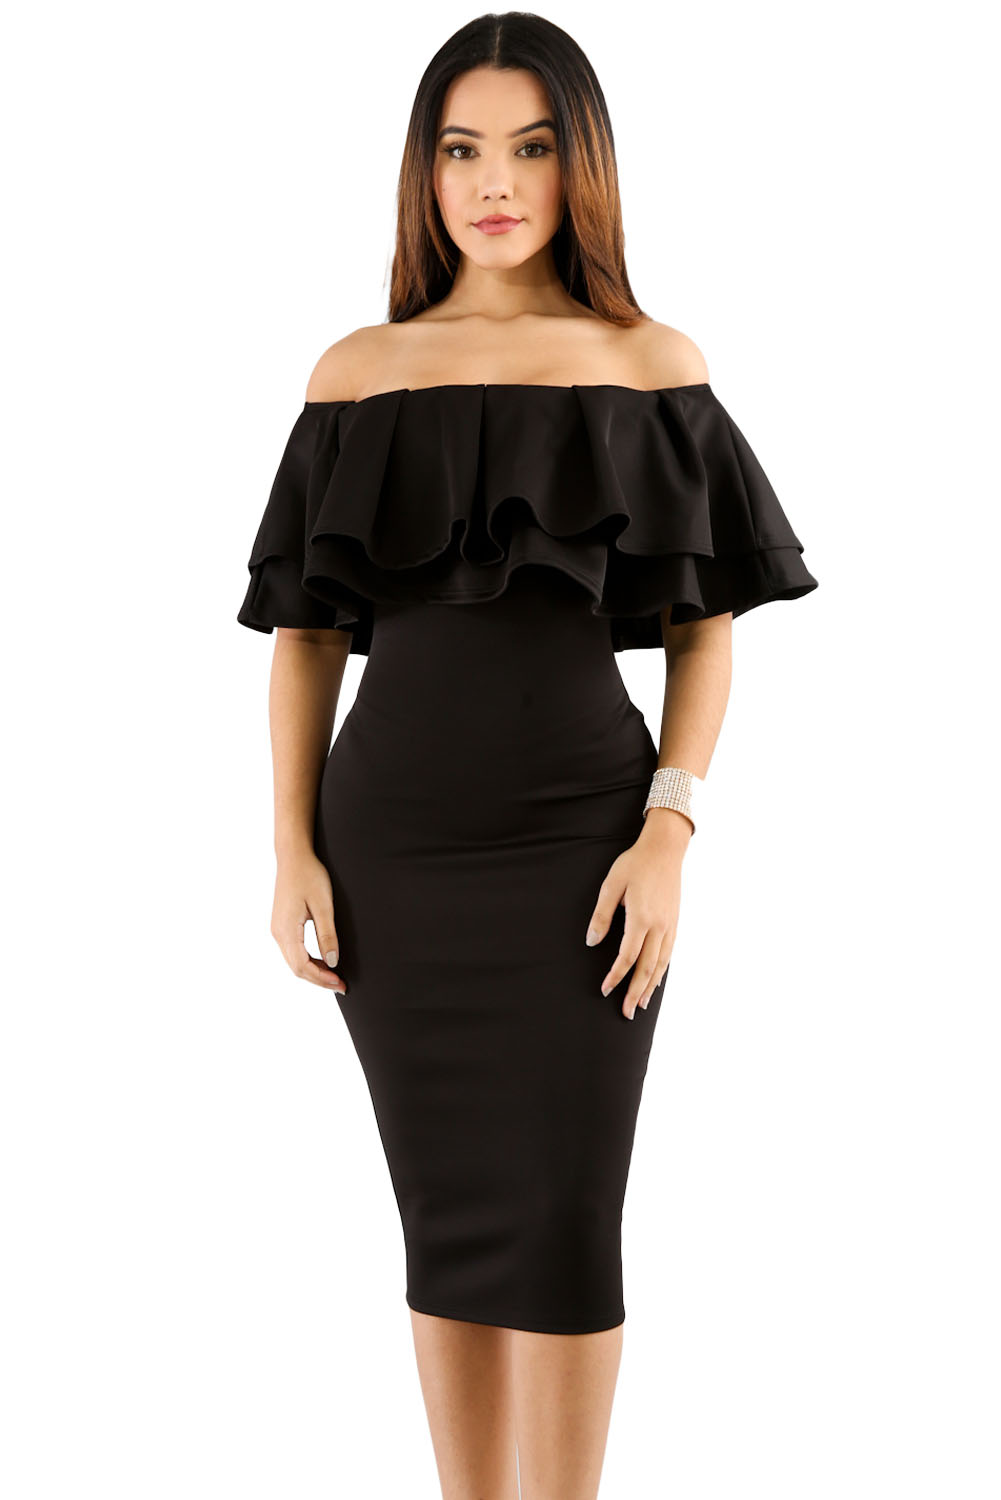 Uncover the right Women's Black Ruffle Dress, Juniors Black Ruffle Dress and Girls Black Ruffle Dress at Macy's. Macy's Presents: The Edit - A curated mix of fashion and inspiration Check It Out Free Shipping with $49 purchase + Free Store Pickup.